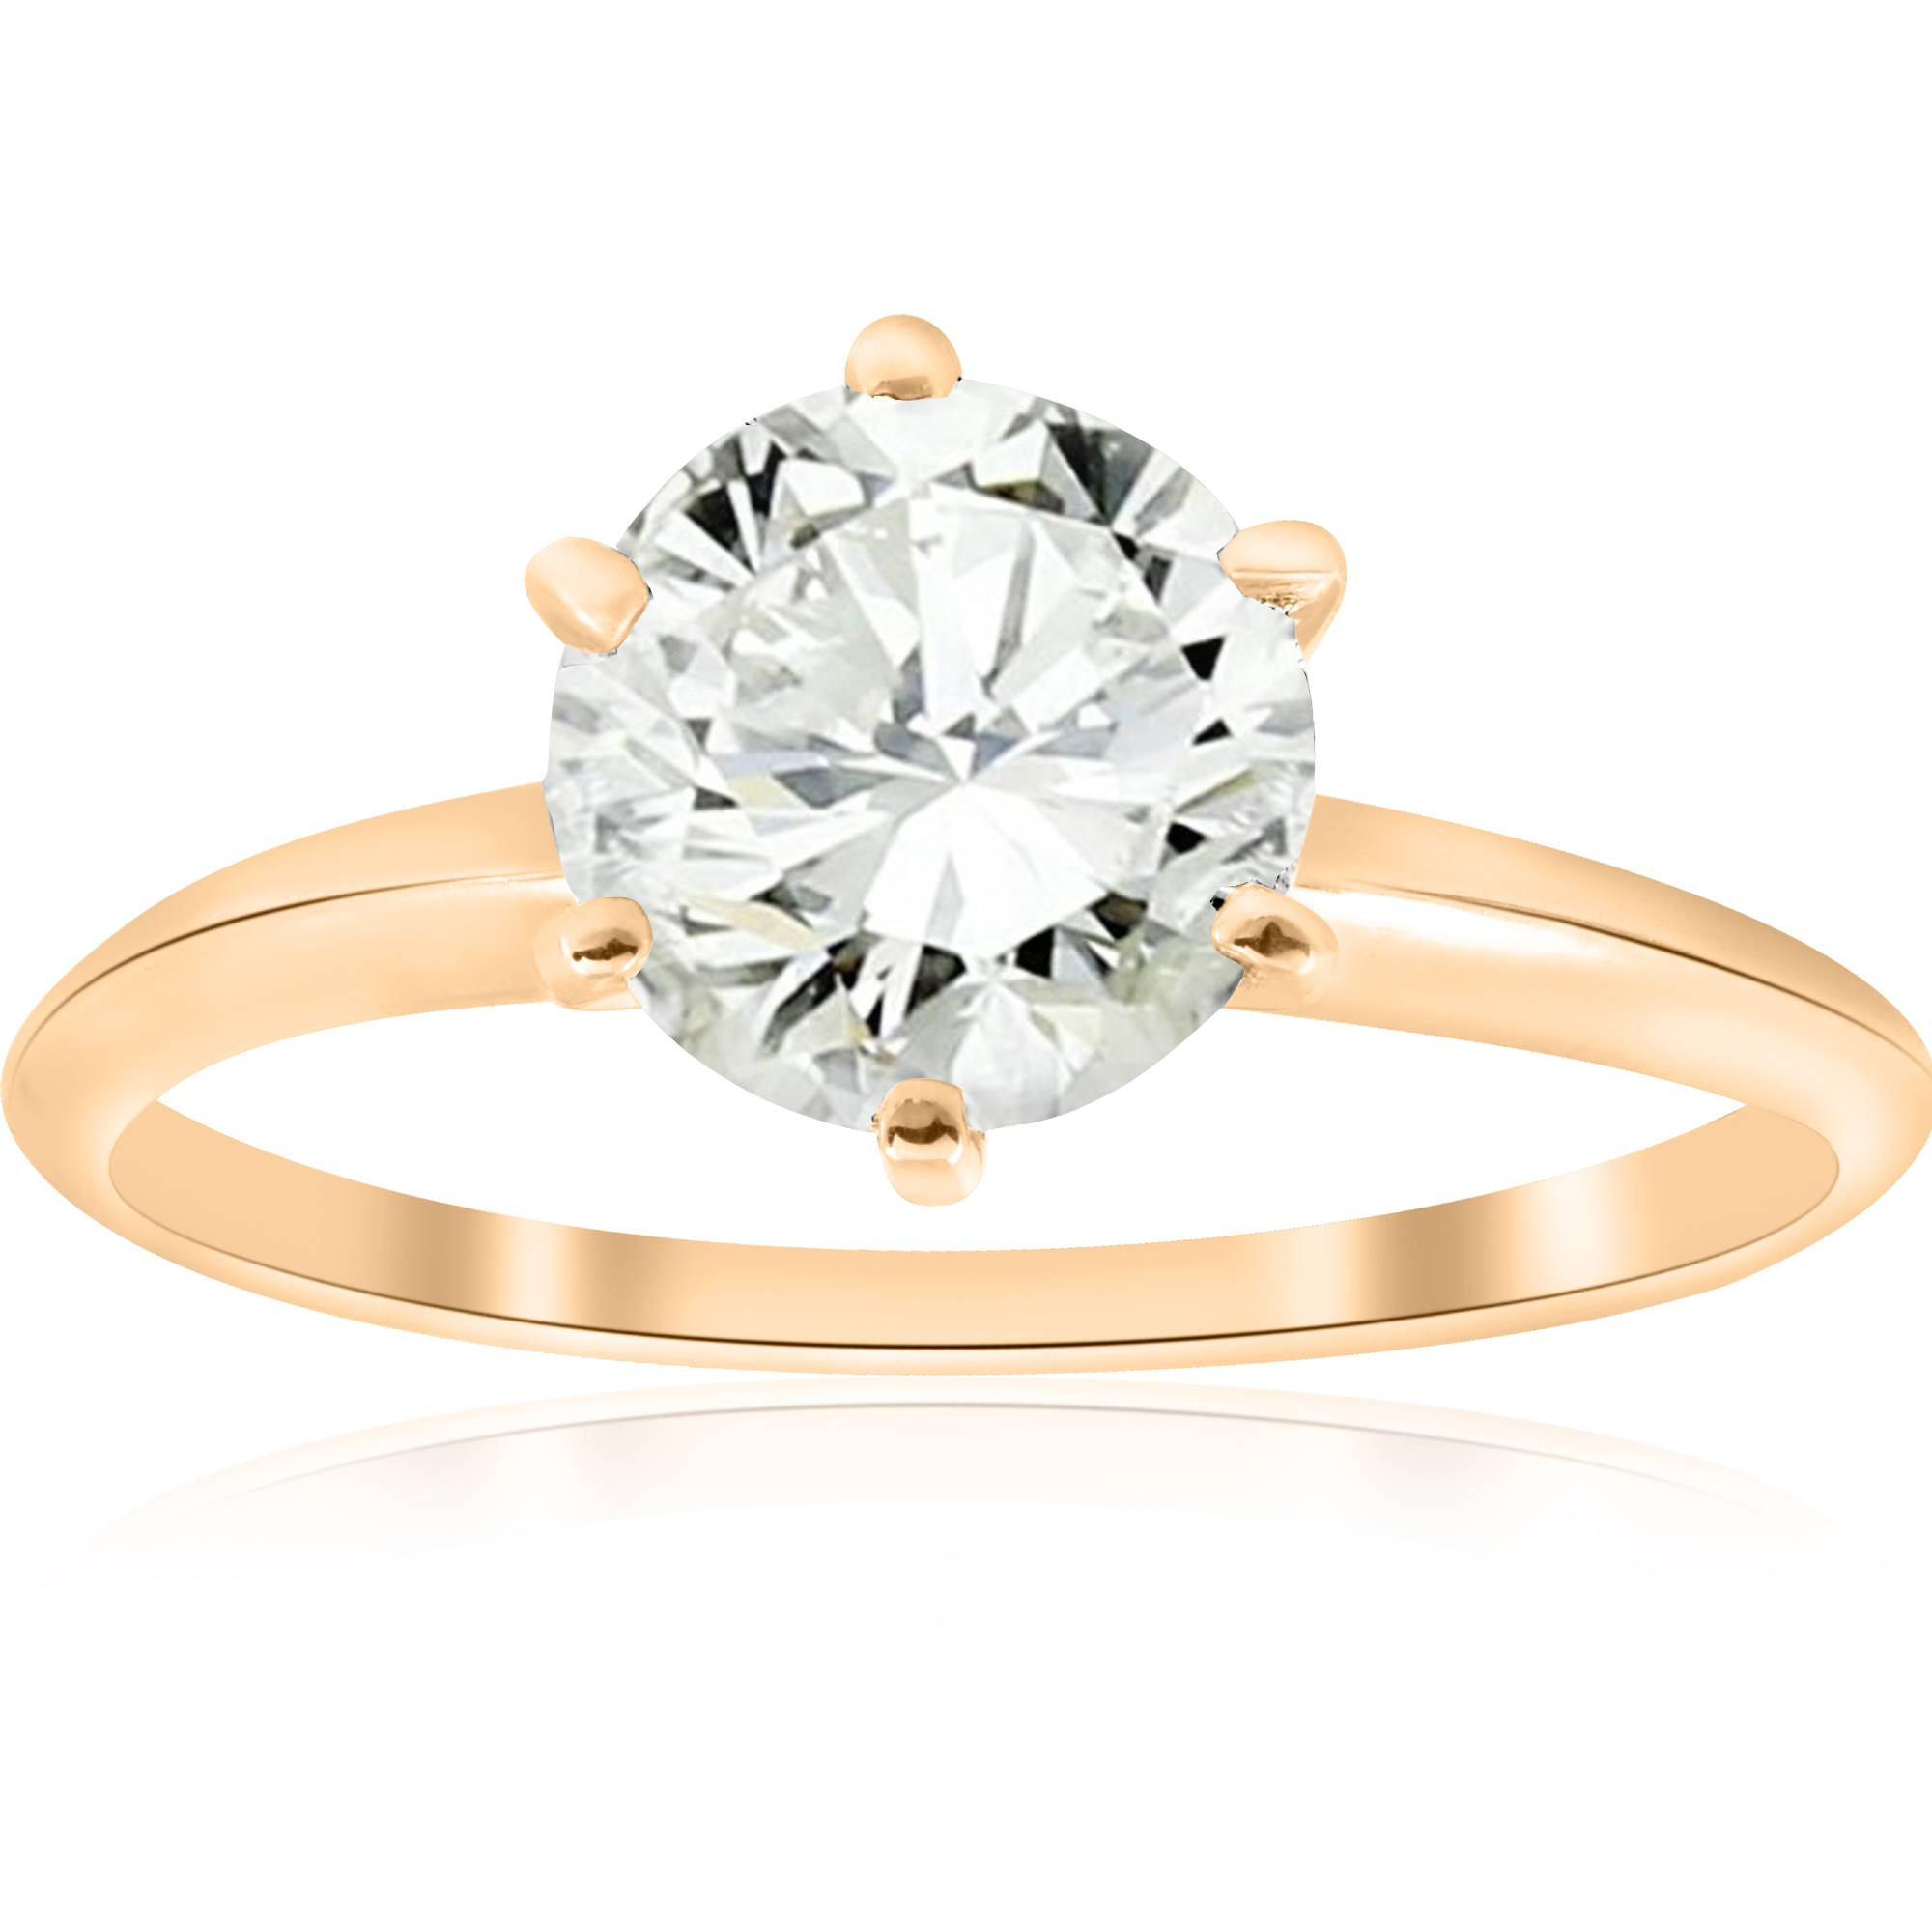 Huge 14k Yellow Gold 1 1 2 ct Round Solitaire Diamond Engagement Ring Enhanced by Pompeii3